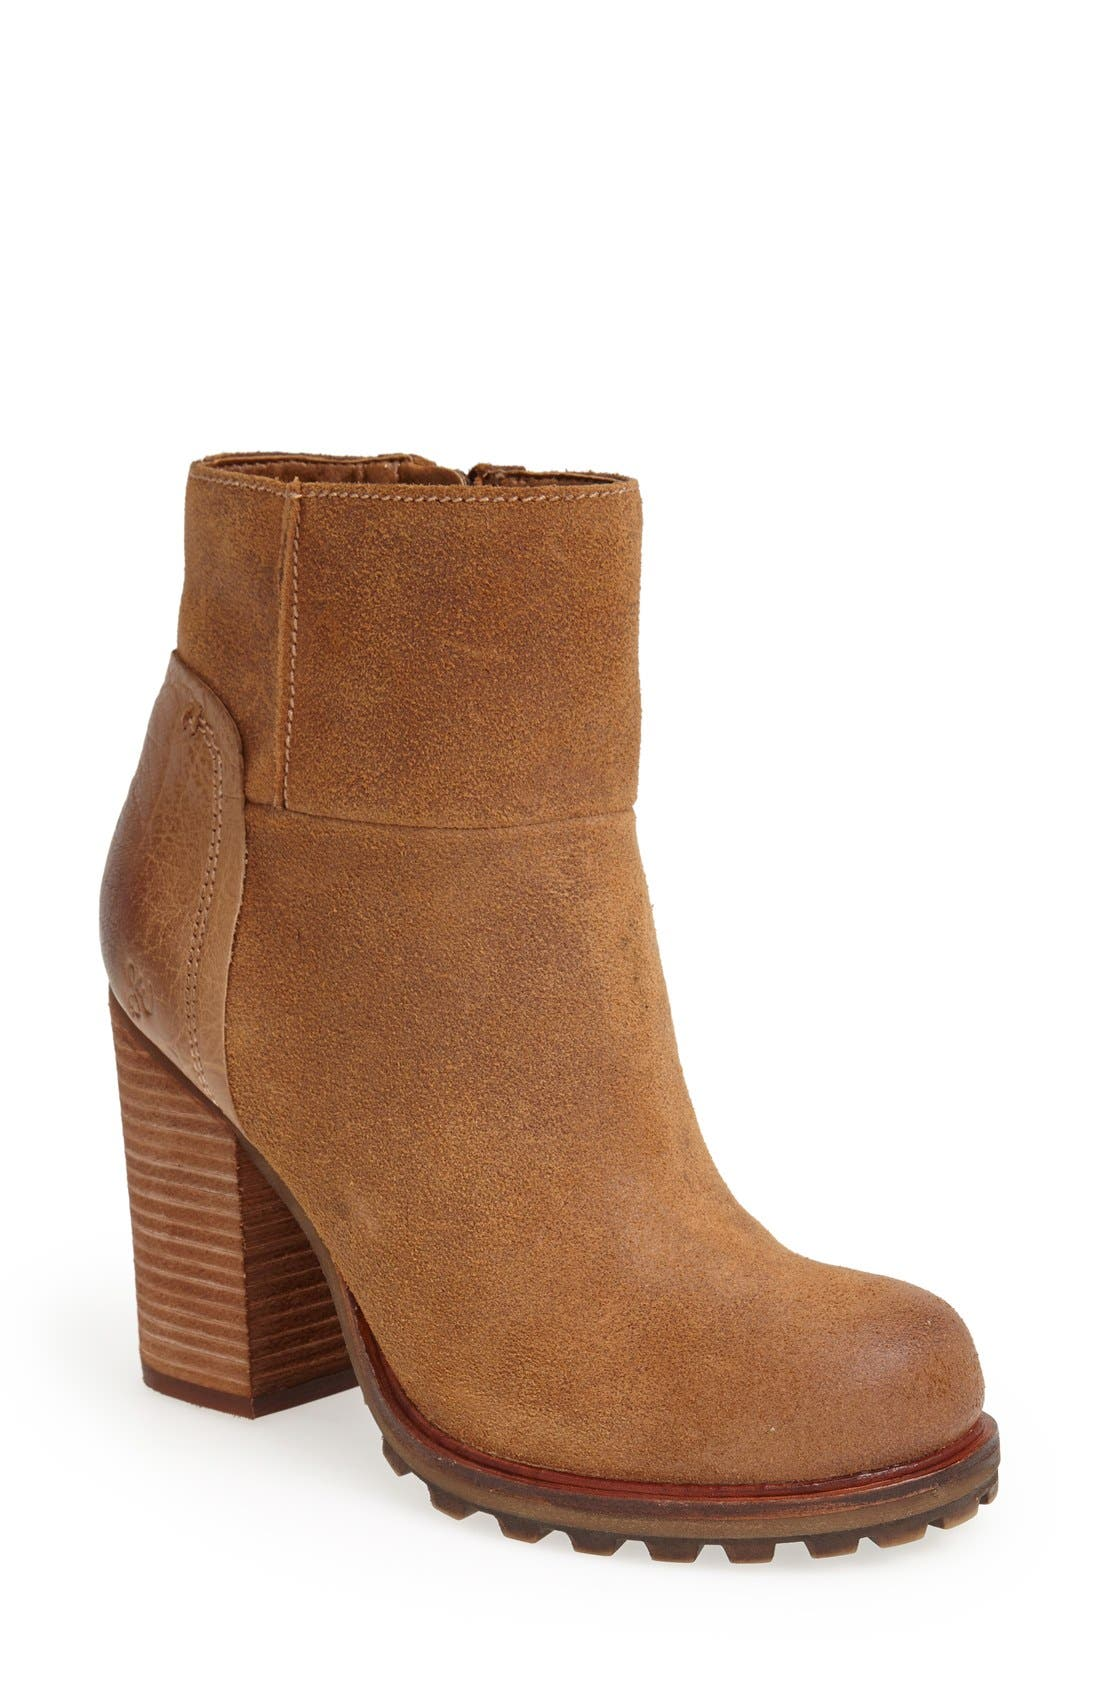 Main Image - Sam Edelman 'Franklin' Boot (Women)